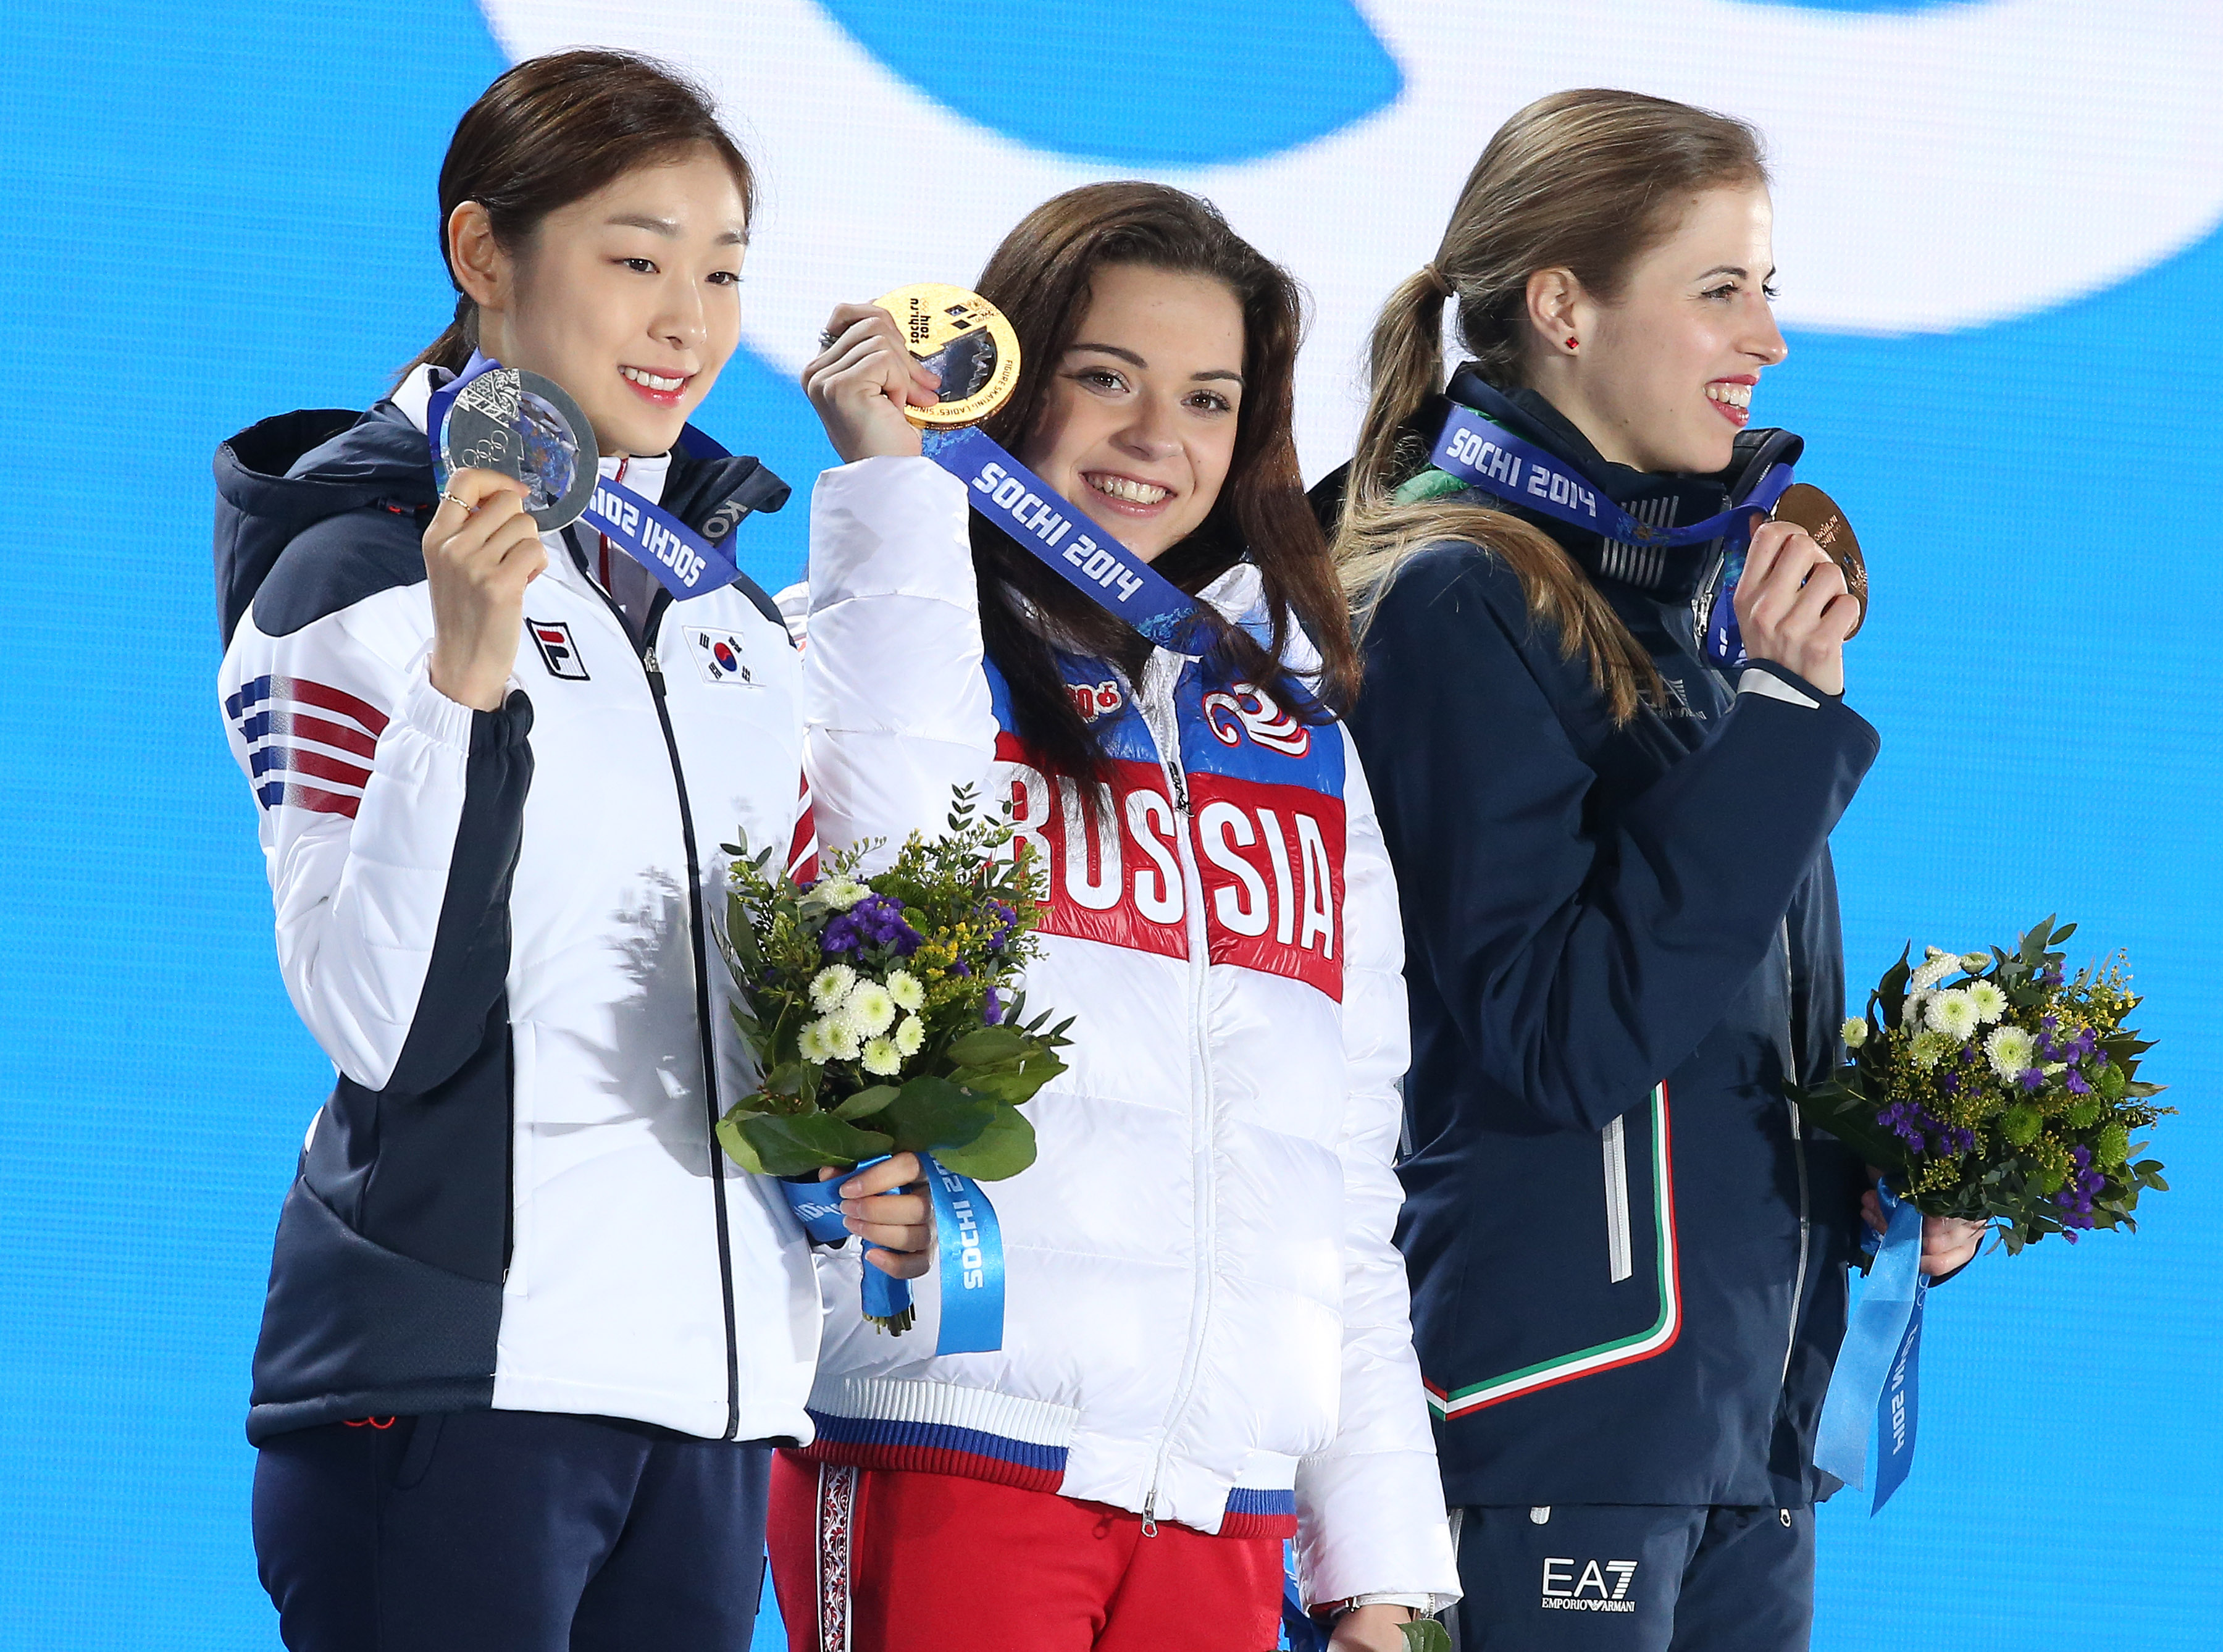 Silver medalist Yuna Kim of South Korea, Gold medalist Adelina Sotnikova of Russia and Bronze medalist Carolina Kostner of Italy celebrate during the medal ceremony for the Women's Free Figure Skating on day fourteen of the Sochi 2014 Winter Olympics at Medals Plaza on February 21, 2014 in Sochi, Russia. (Photo by John Berry/Getty Images)